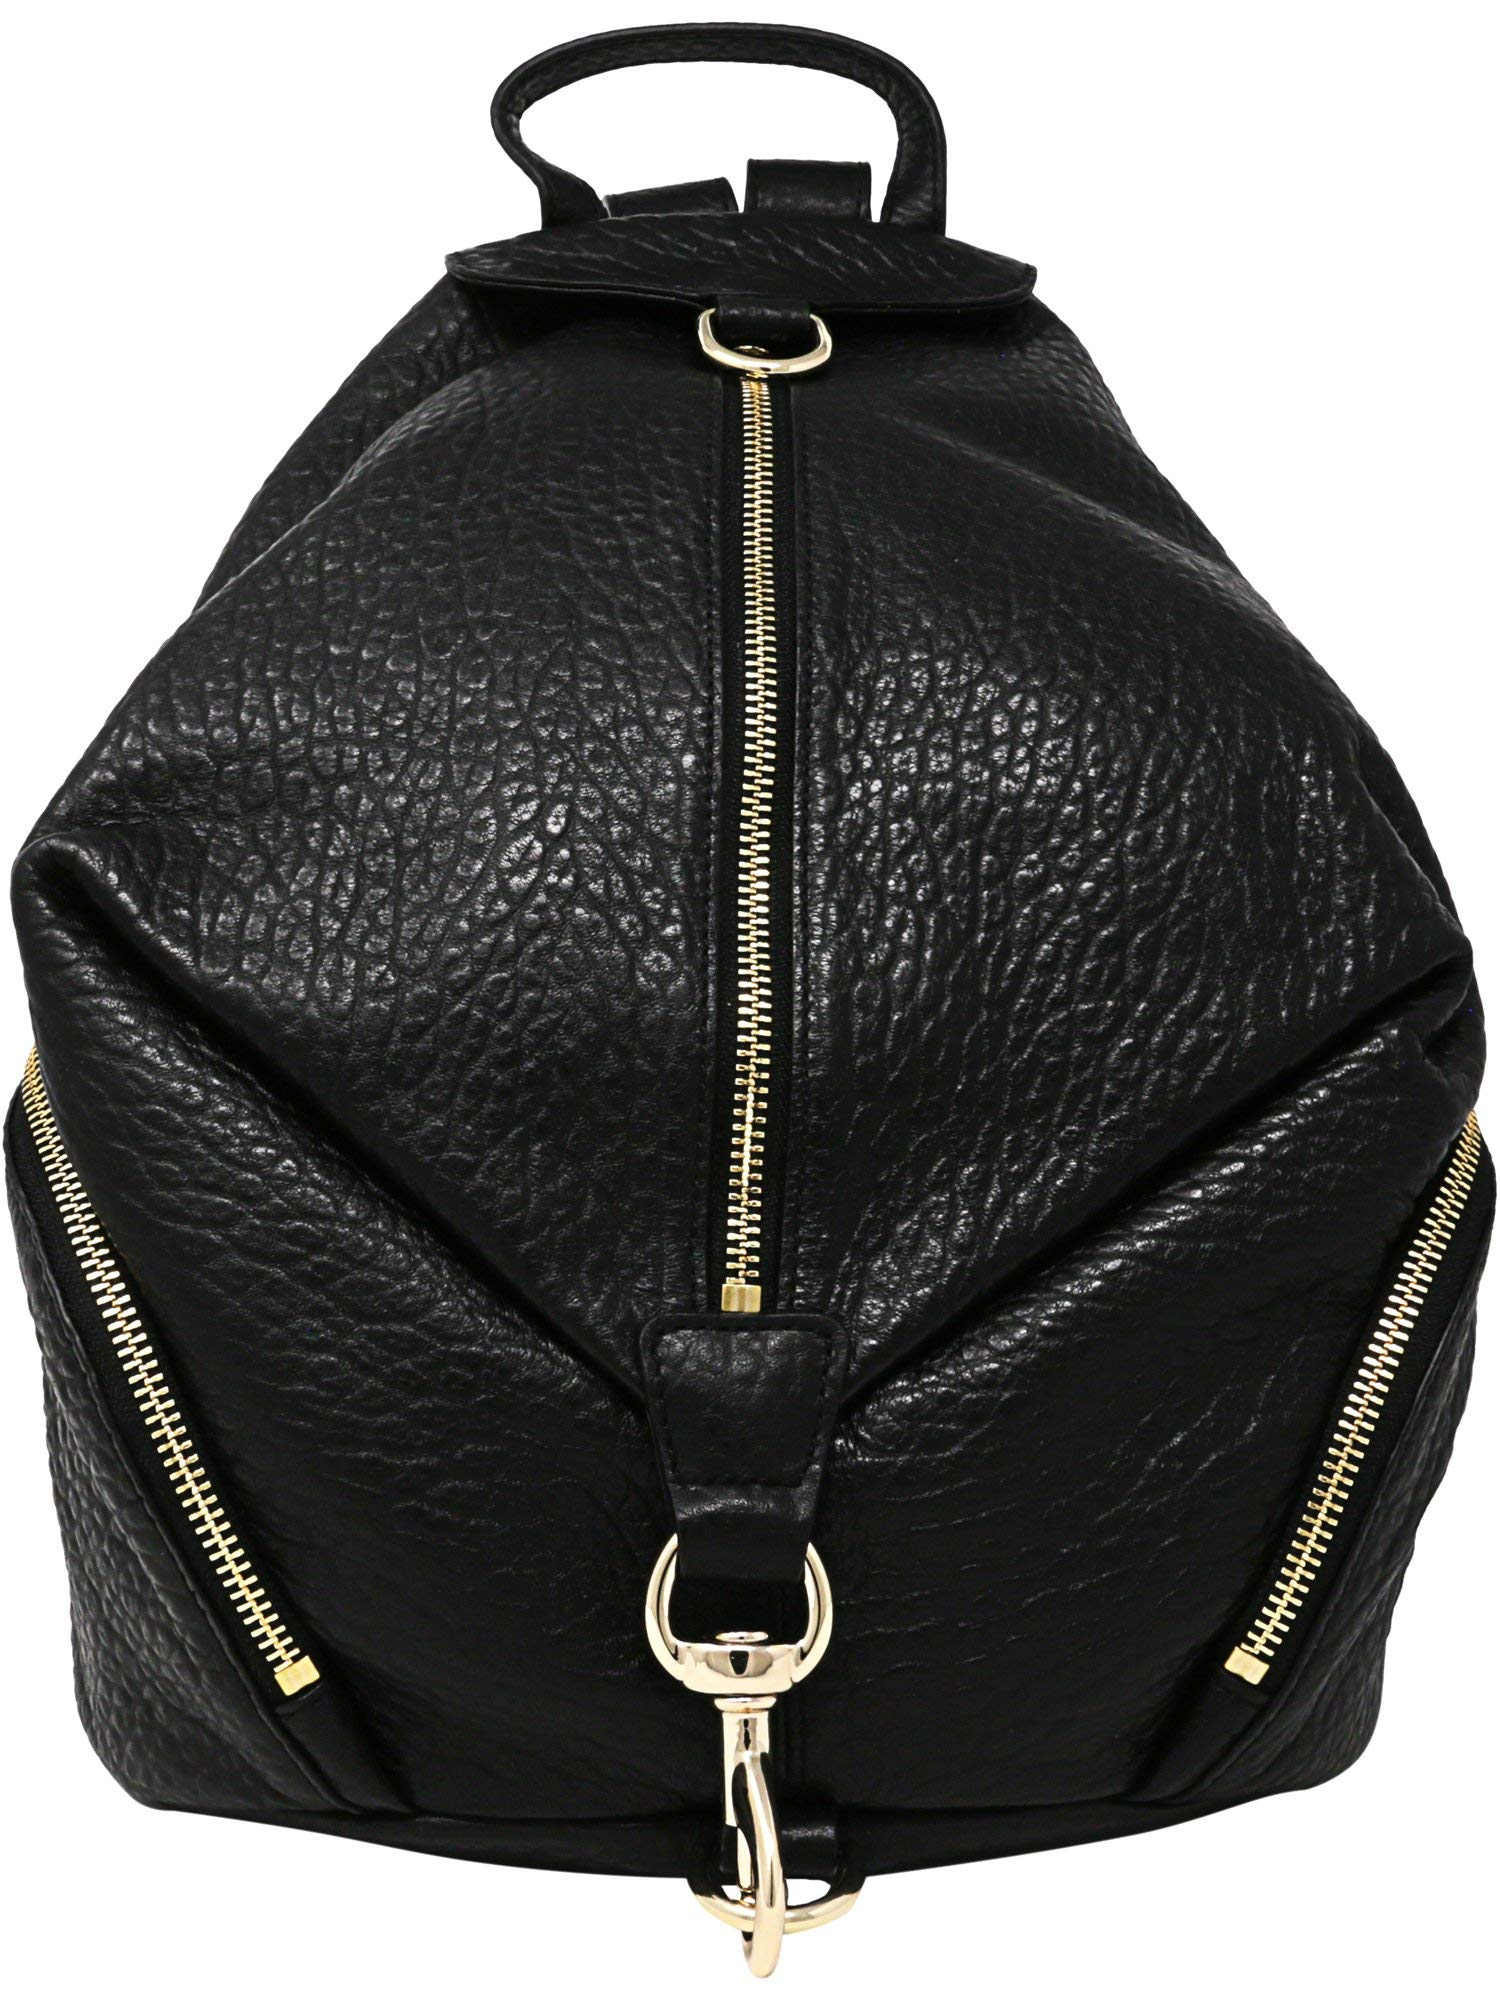 Rebecca Minkoff Julian Gold Hardware Back pack, Black, One Size